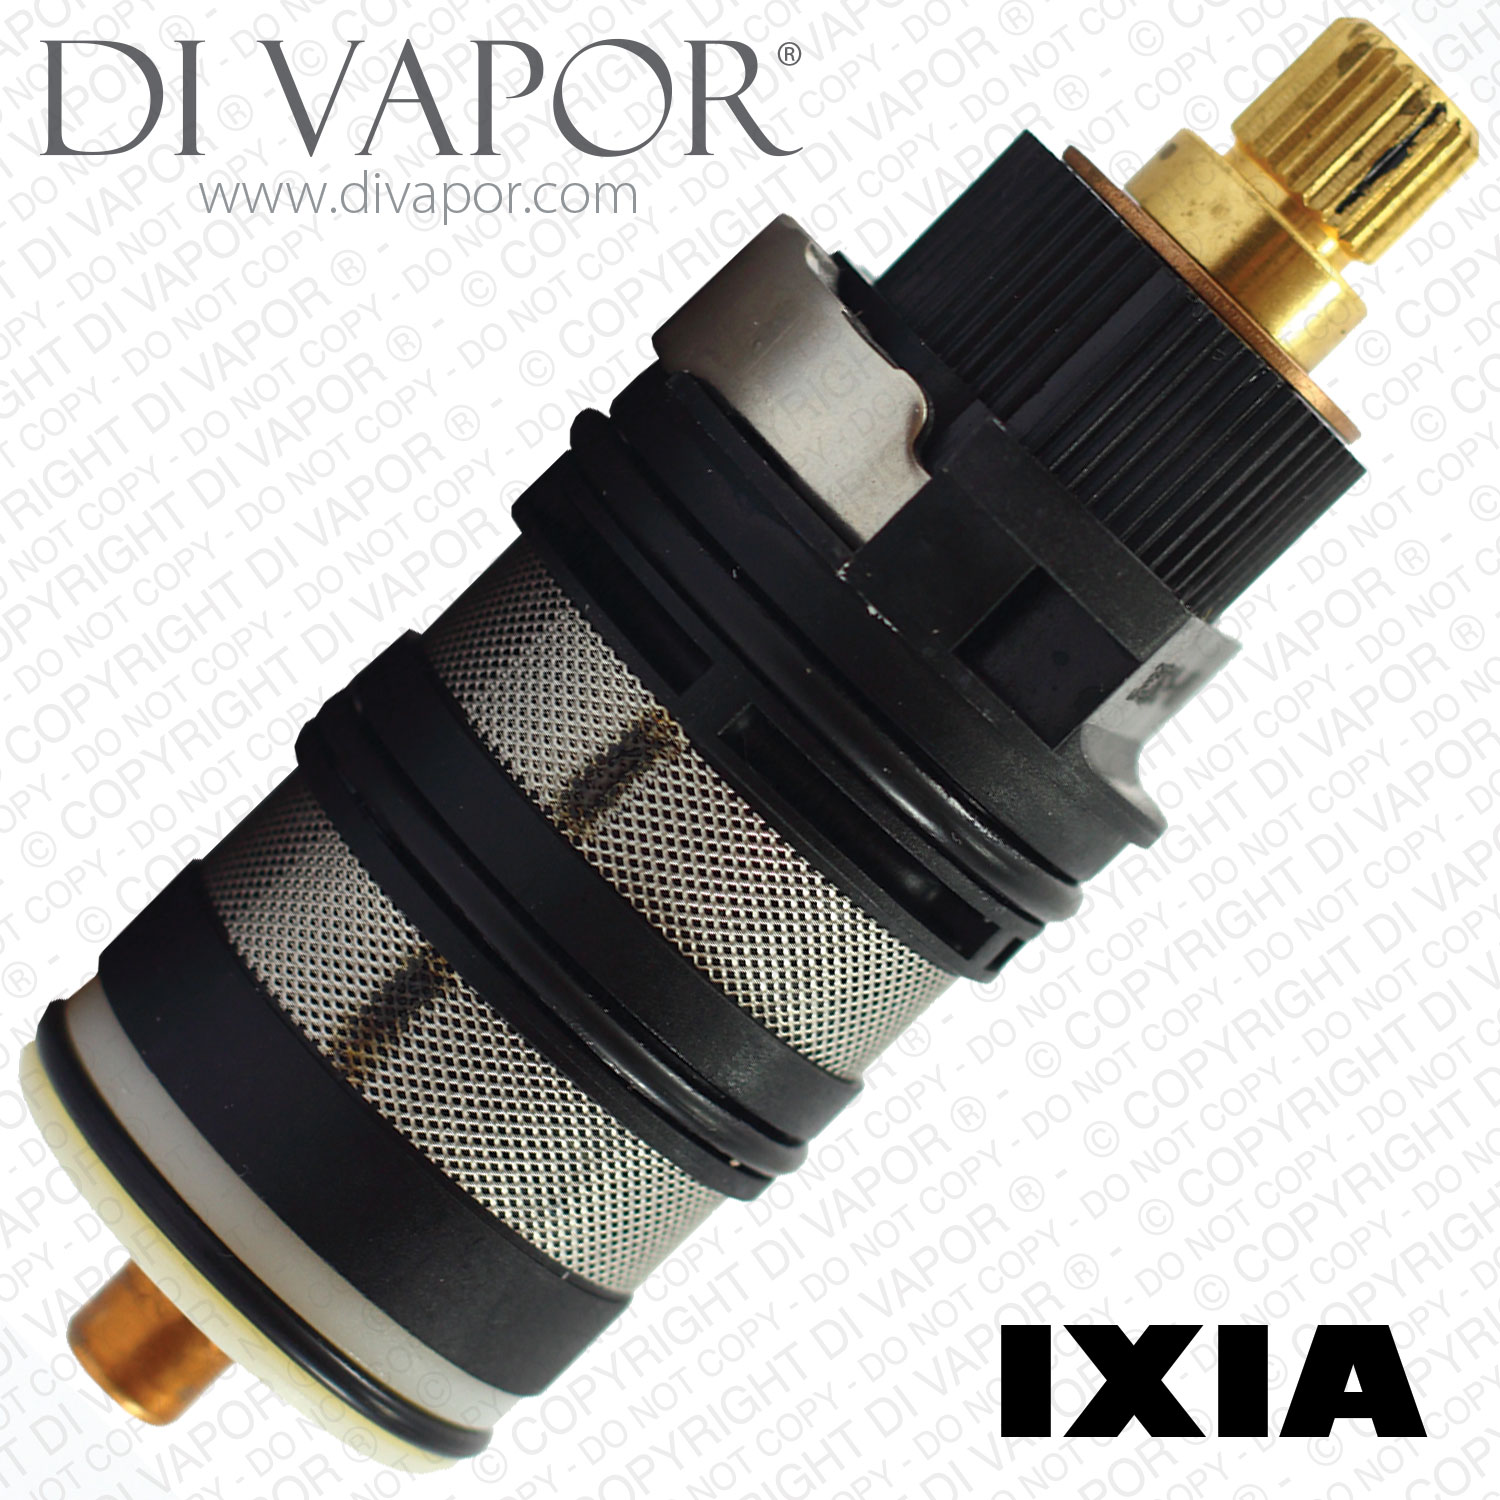 IXIA Shower Diverter Cartridge 2 /& 3 Way for Concealed or Exposed Shower Flova